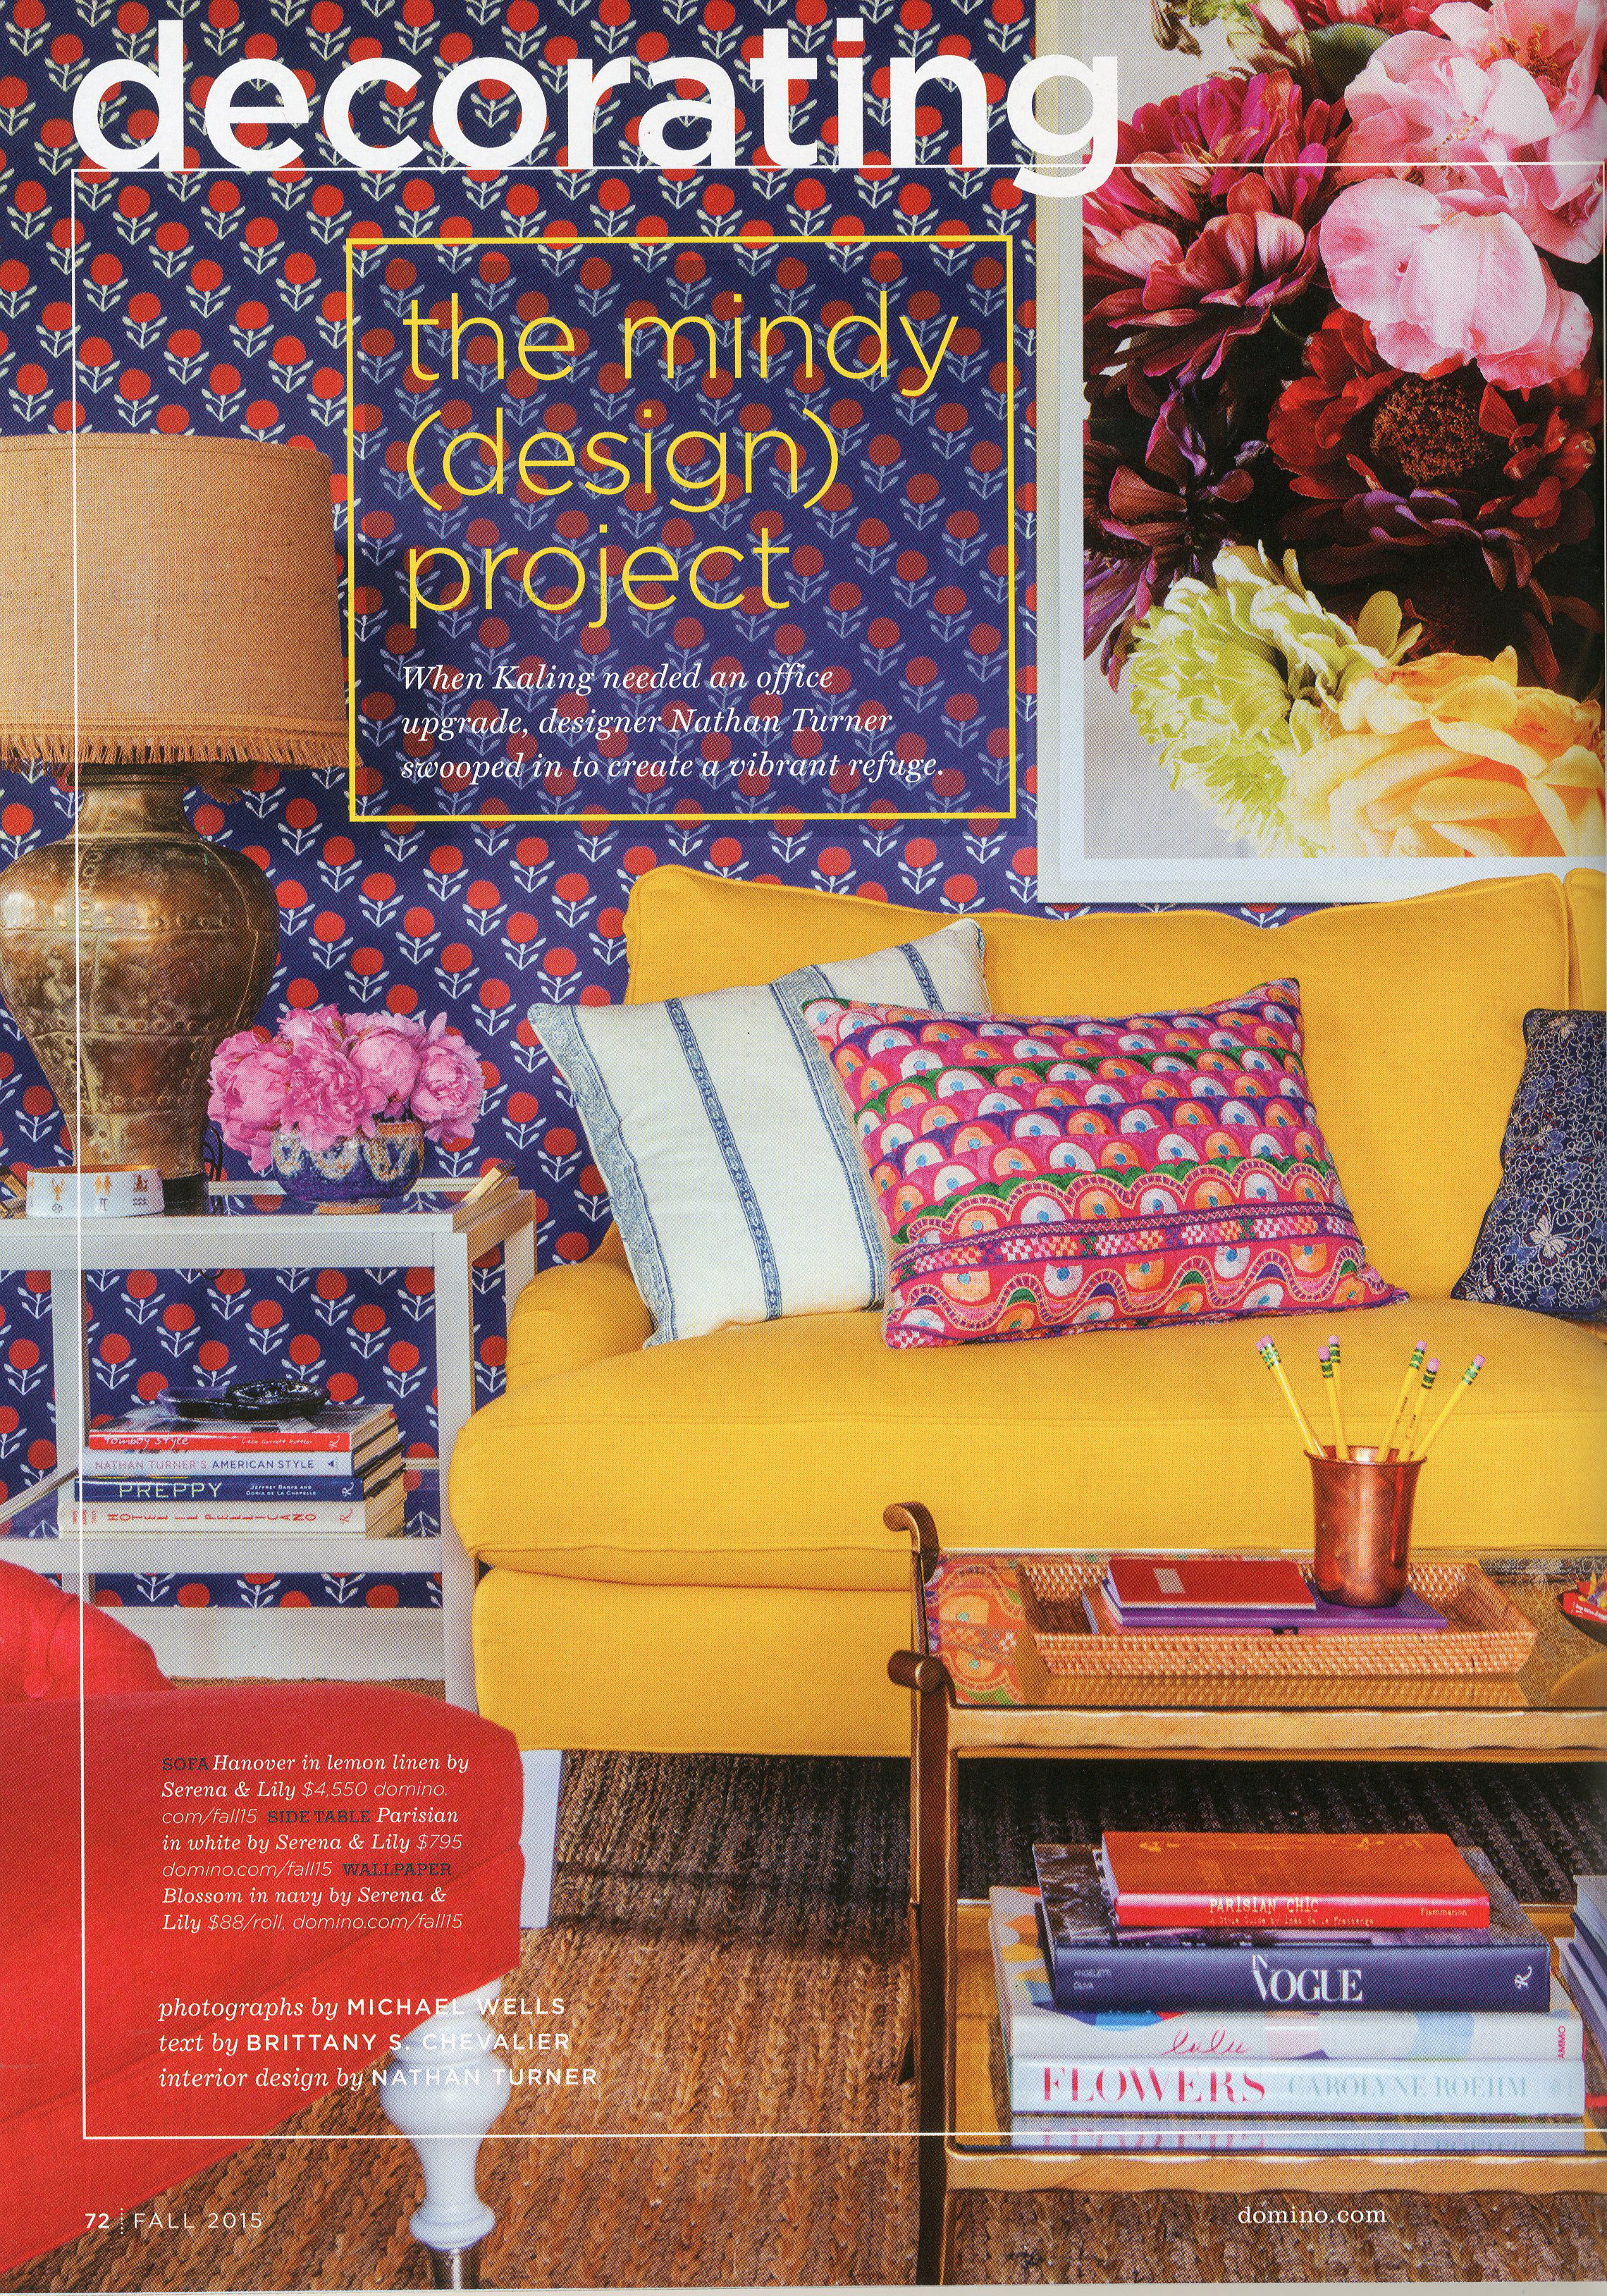 Wallpaper: Domino Magazine, Living room for Mindy Kaling designed by Nathan Turner,2015. (Photographer: Michael Wells)